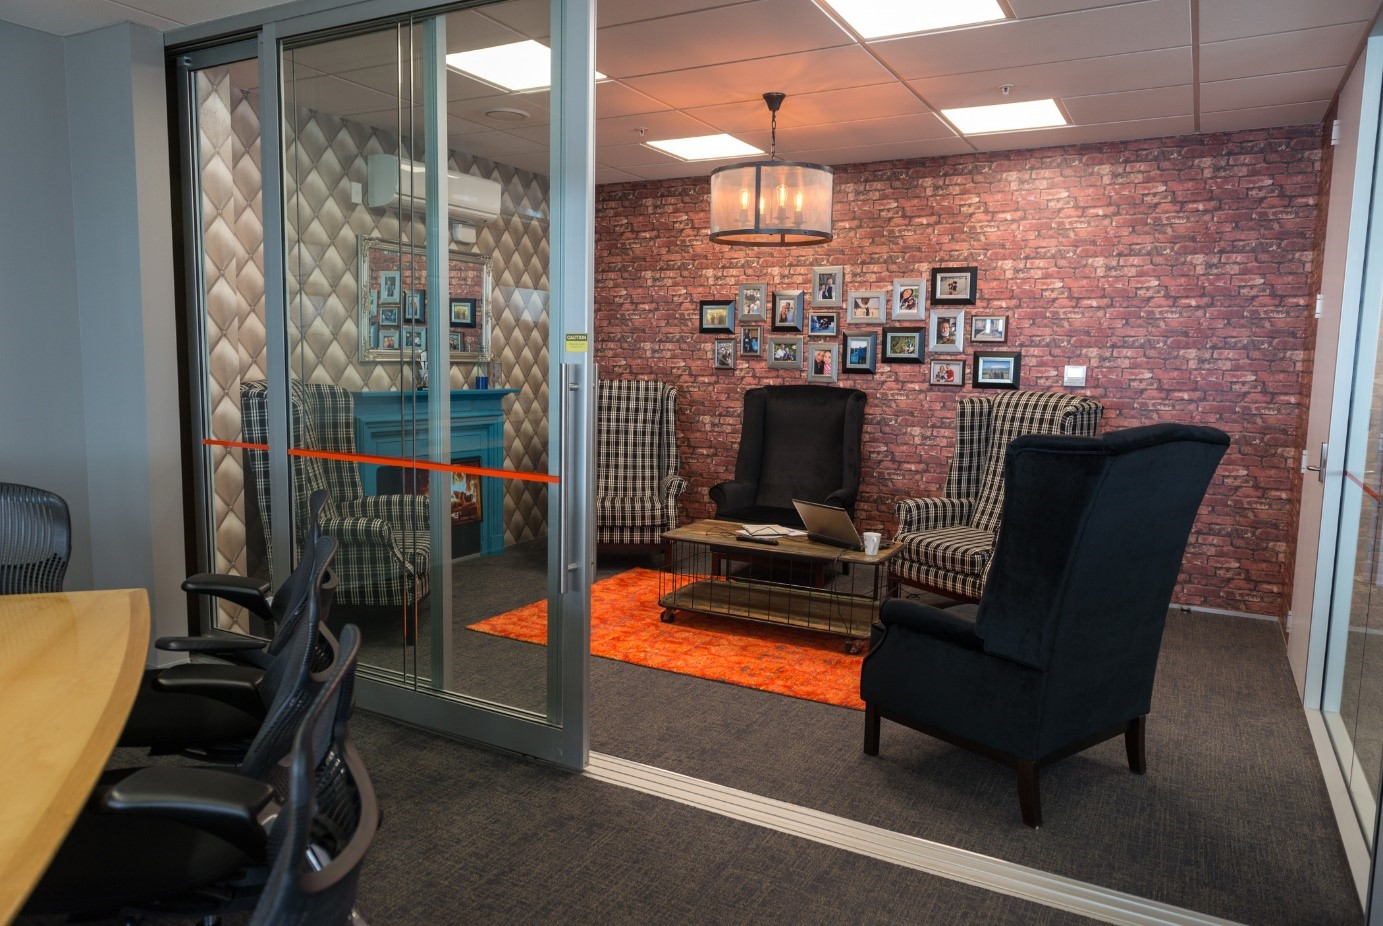 The Lounge - the most popular meeting room